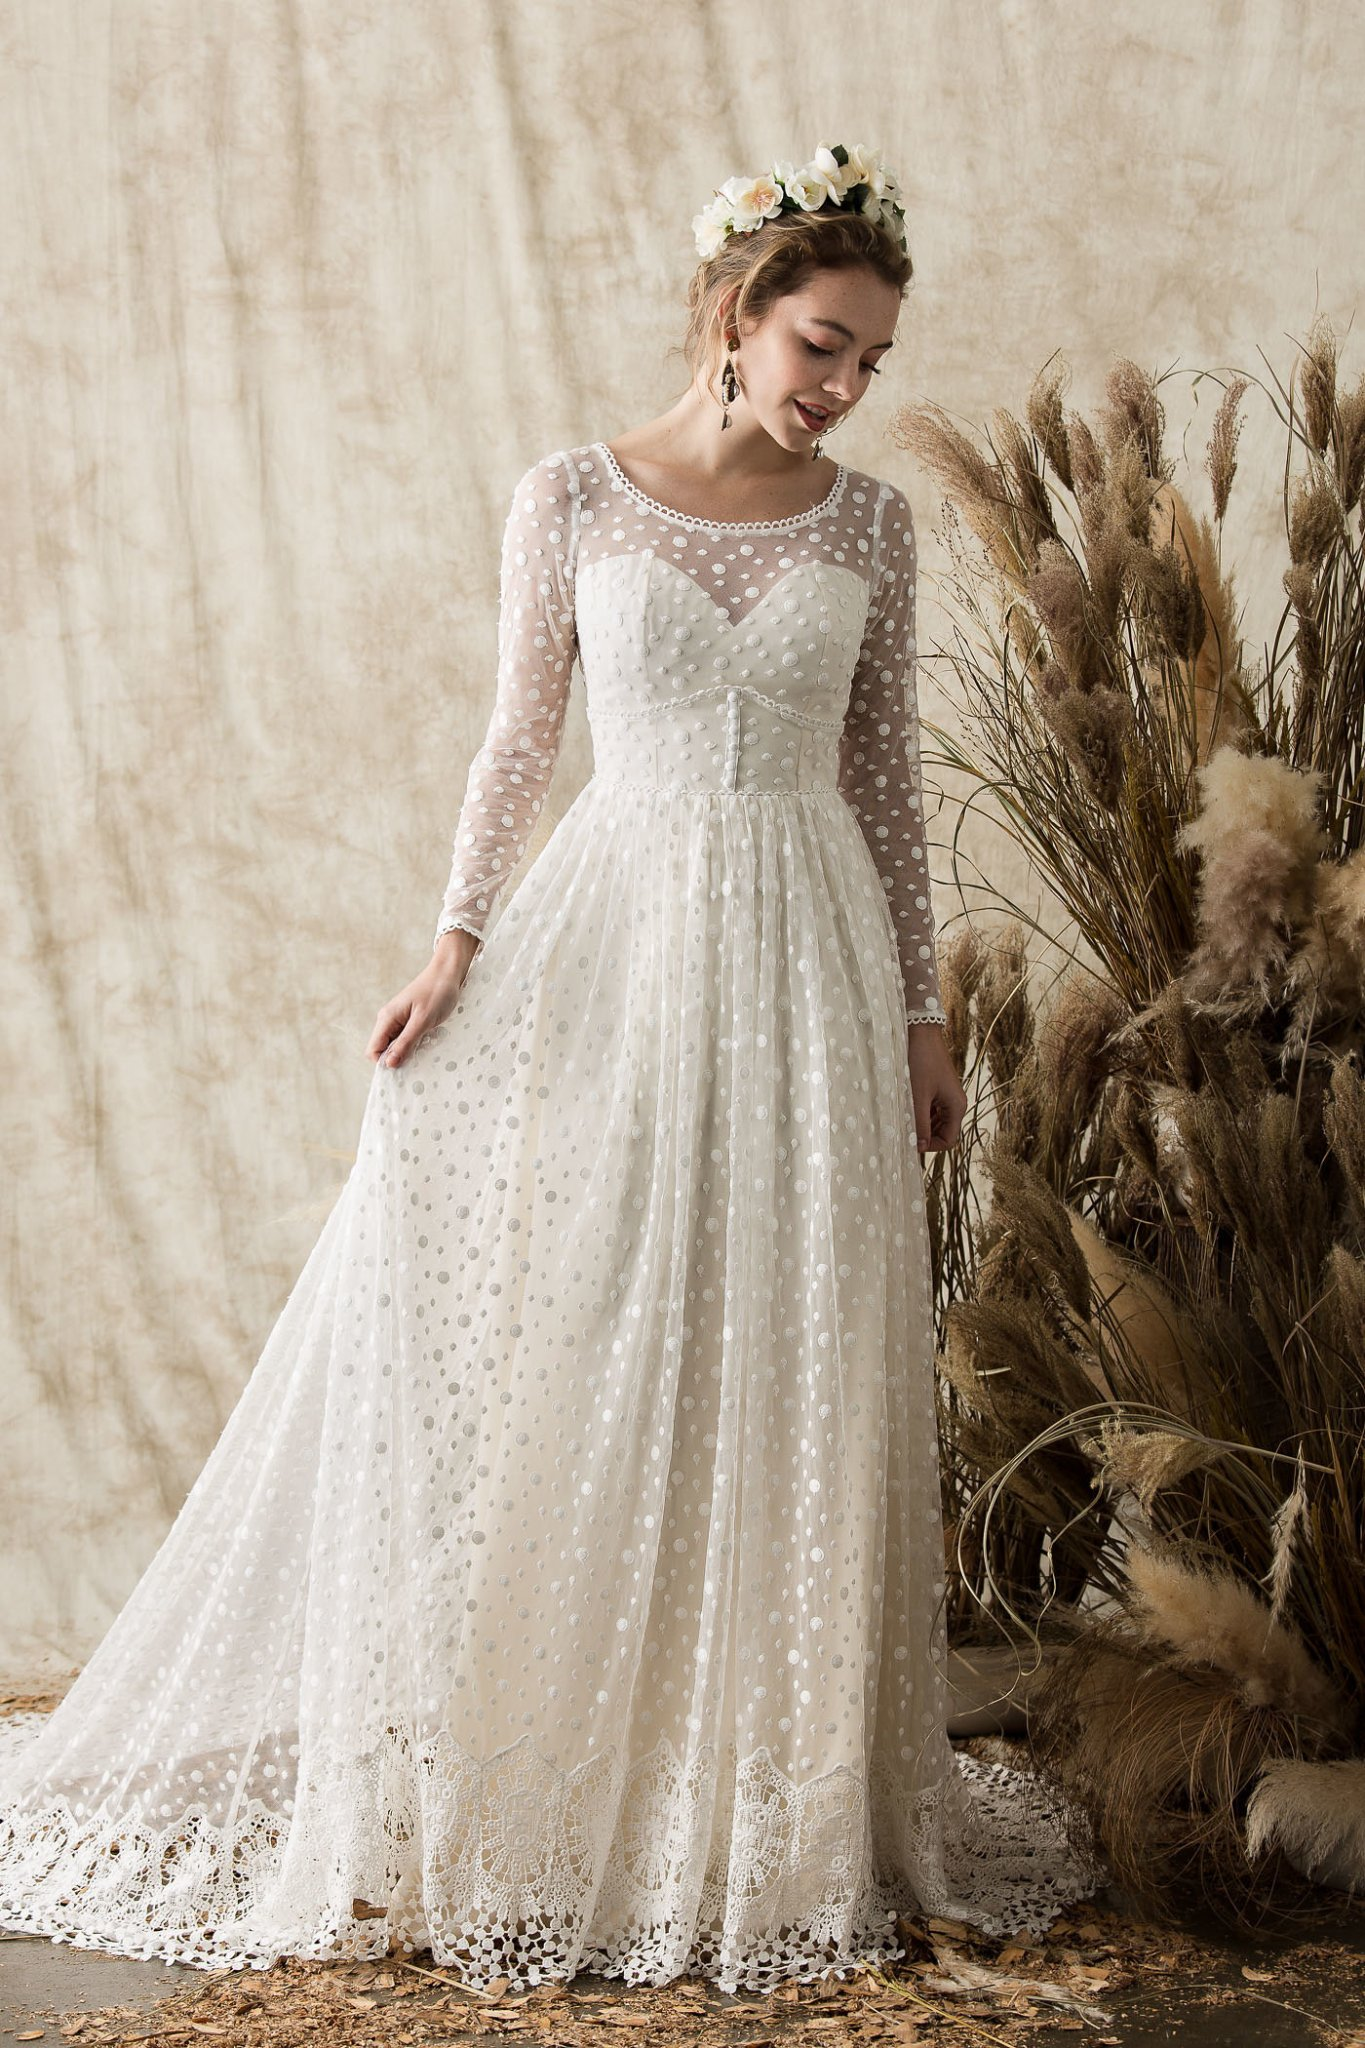 Miranda Long Sleeve Lace Wedding Dress